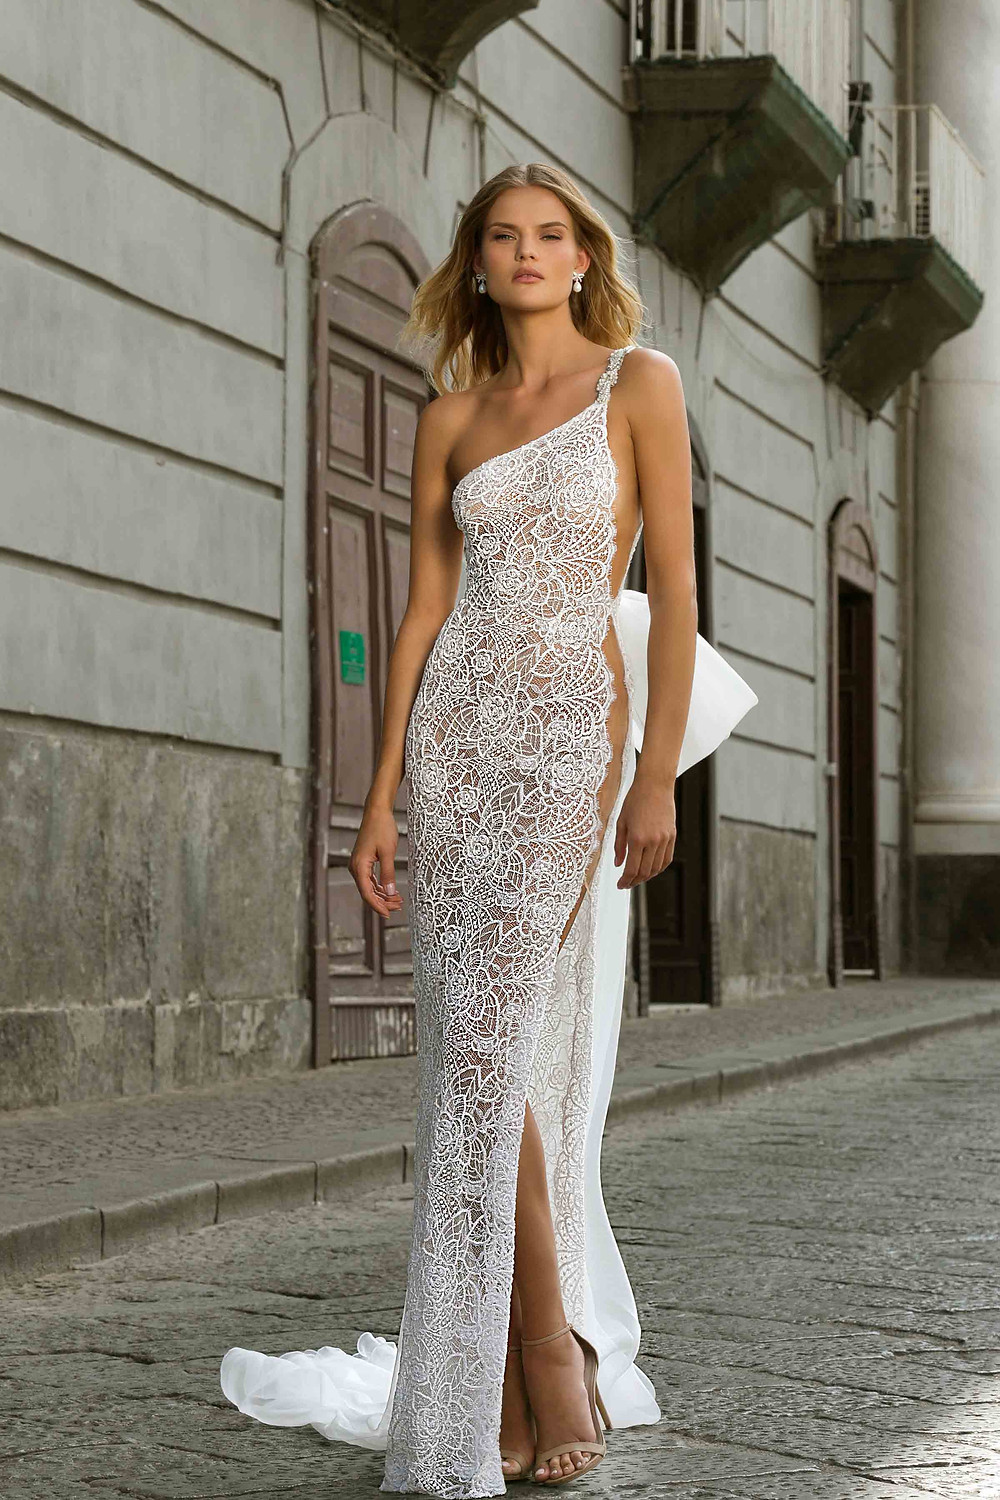 A Berta 2020 one shoulder lace sheath wedding dress, with a high slit, a thin strap and a large bow